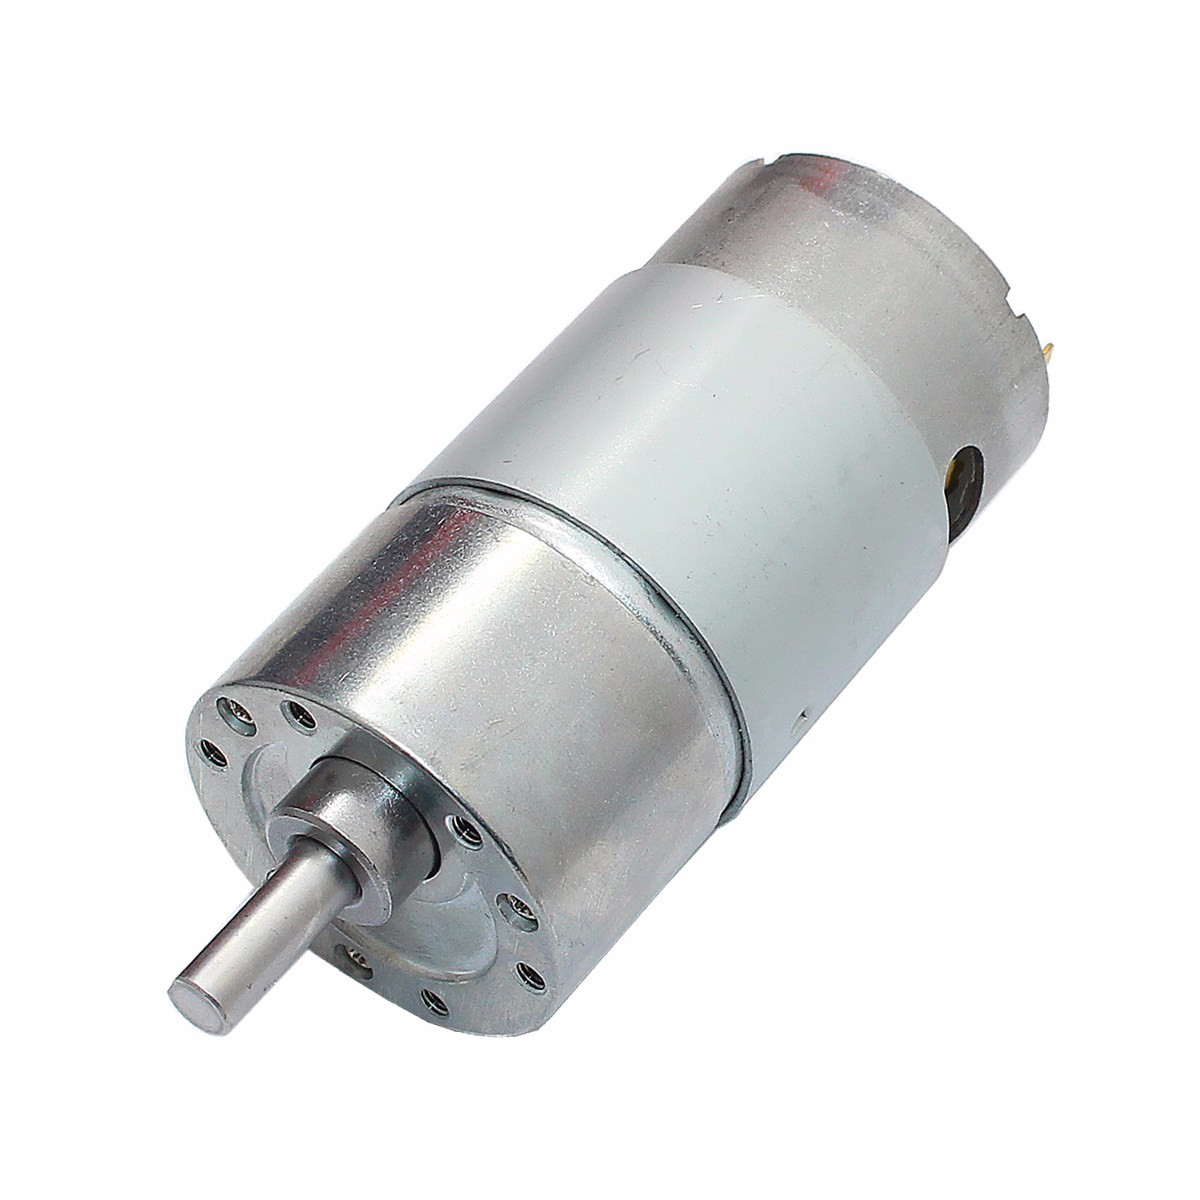 DC 12V 300RPM Geared Motor High Torque 37GB-550 Gear Reducer Motor